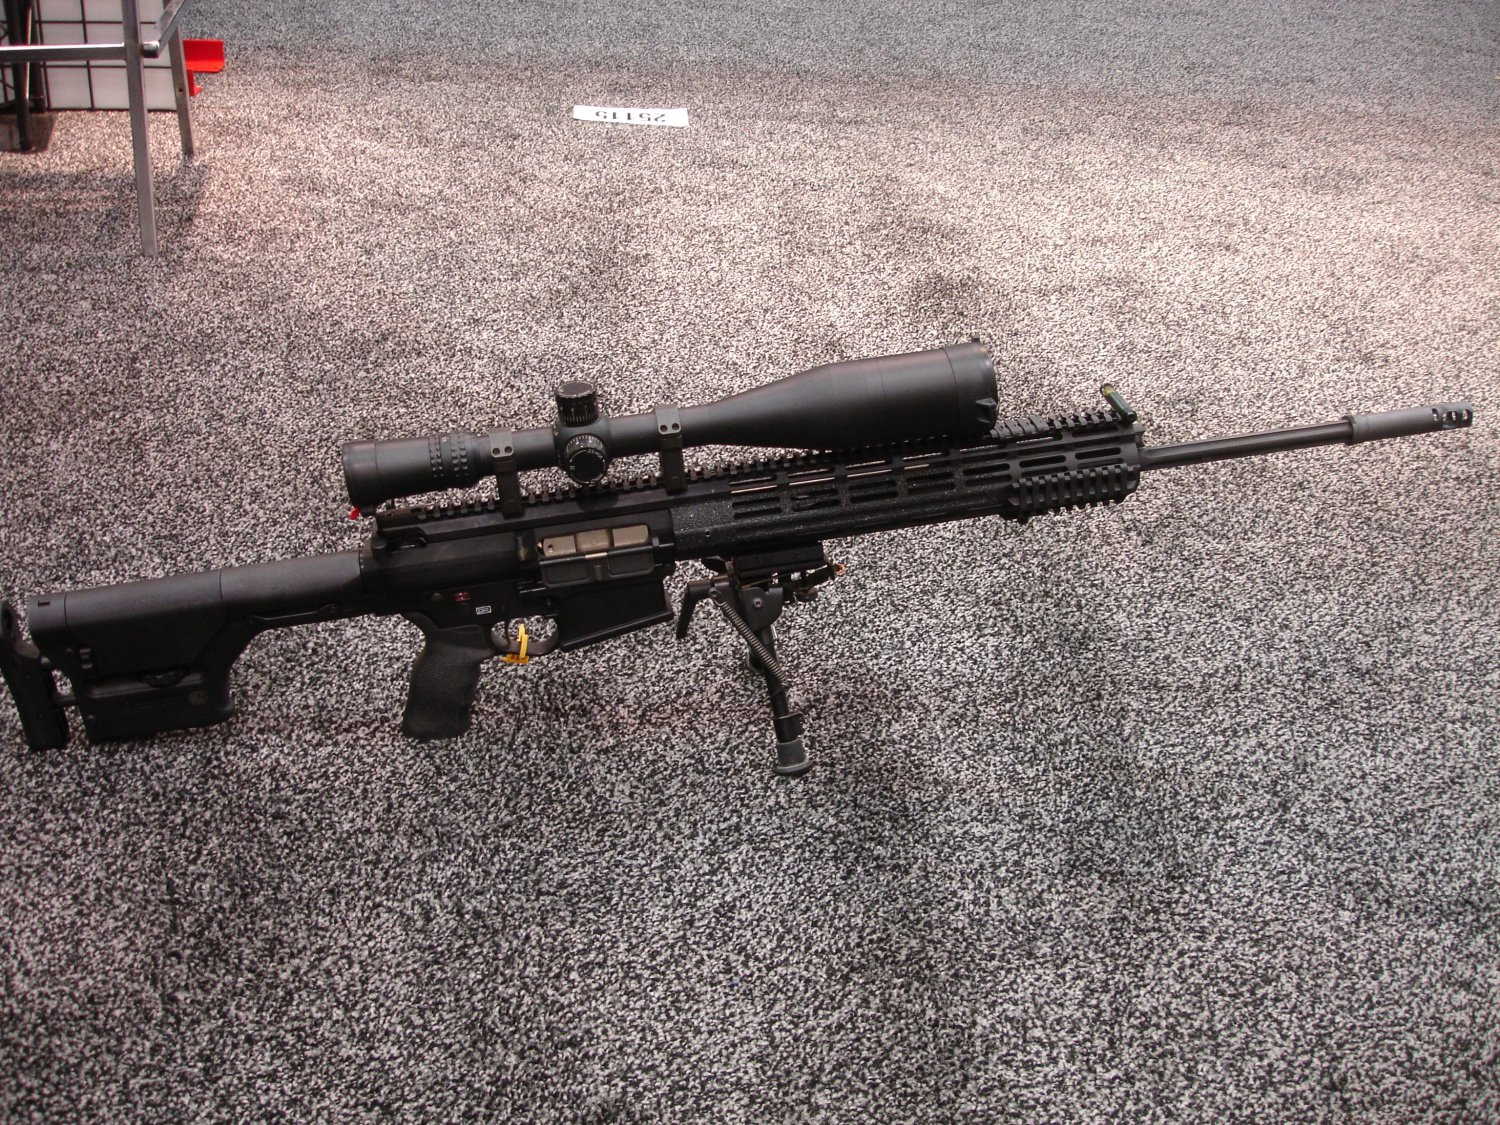 POF P 308 SHOT%20Show%202008 2 03 08 5 <!  :en  >POF P 308 Gas Piston/Op Rod Battle Rifle/Carbine at SHOT Show 2008<!  :  >